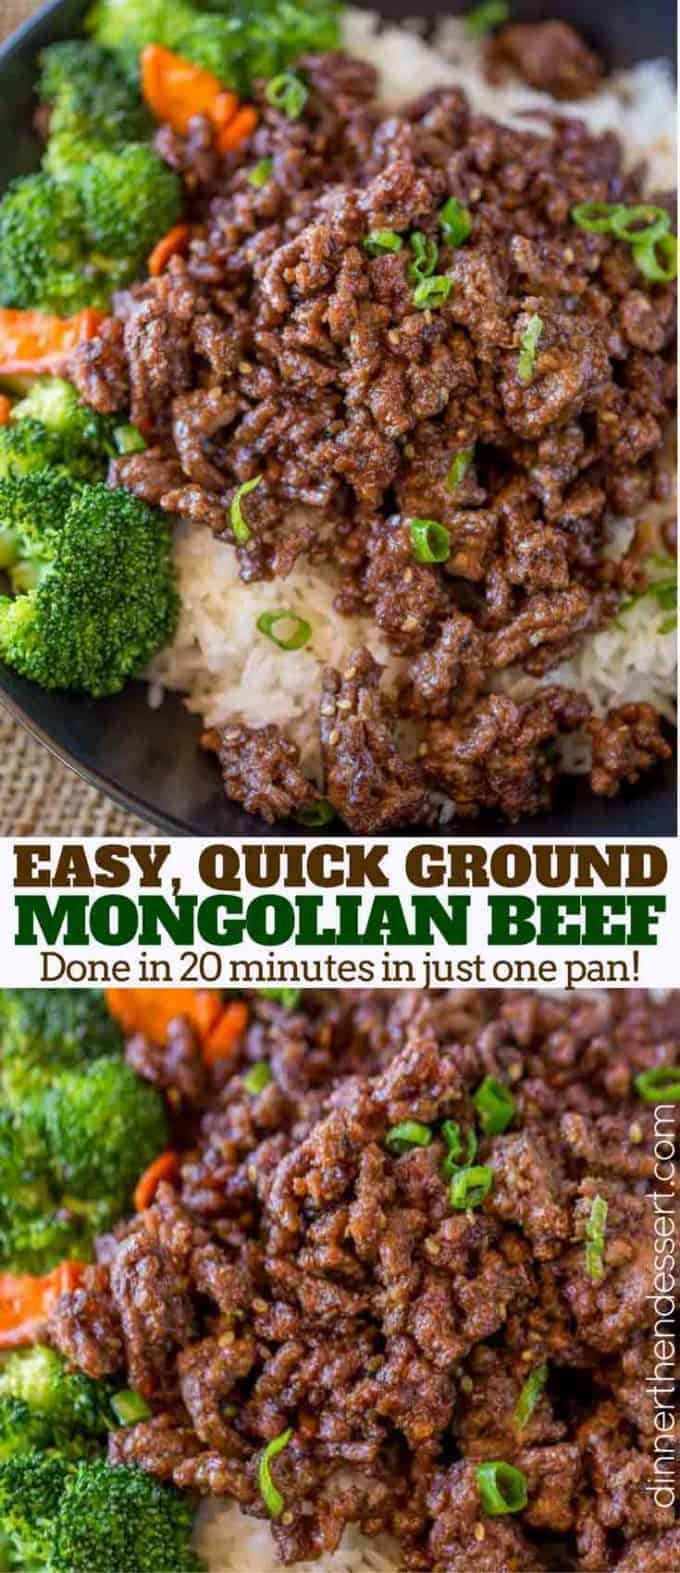 Mongolian beef made with ground beef